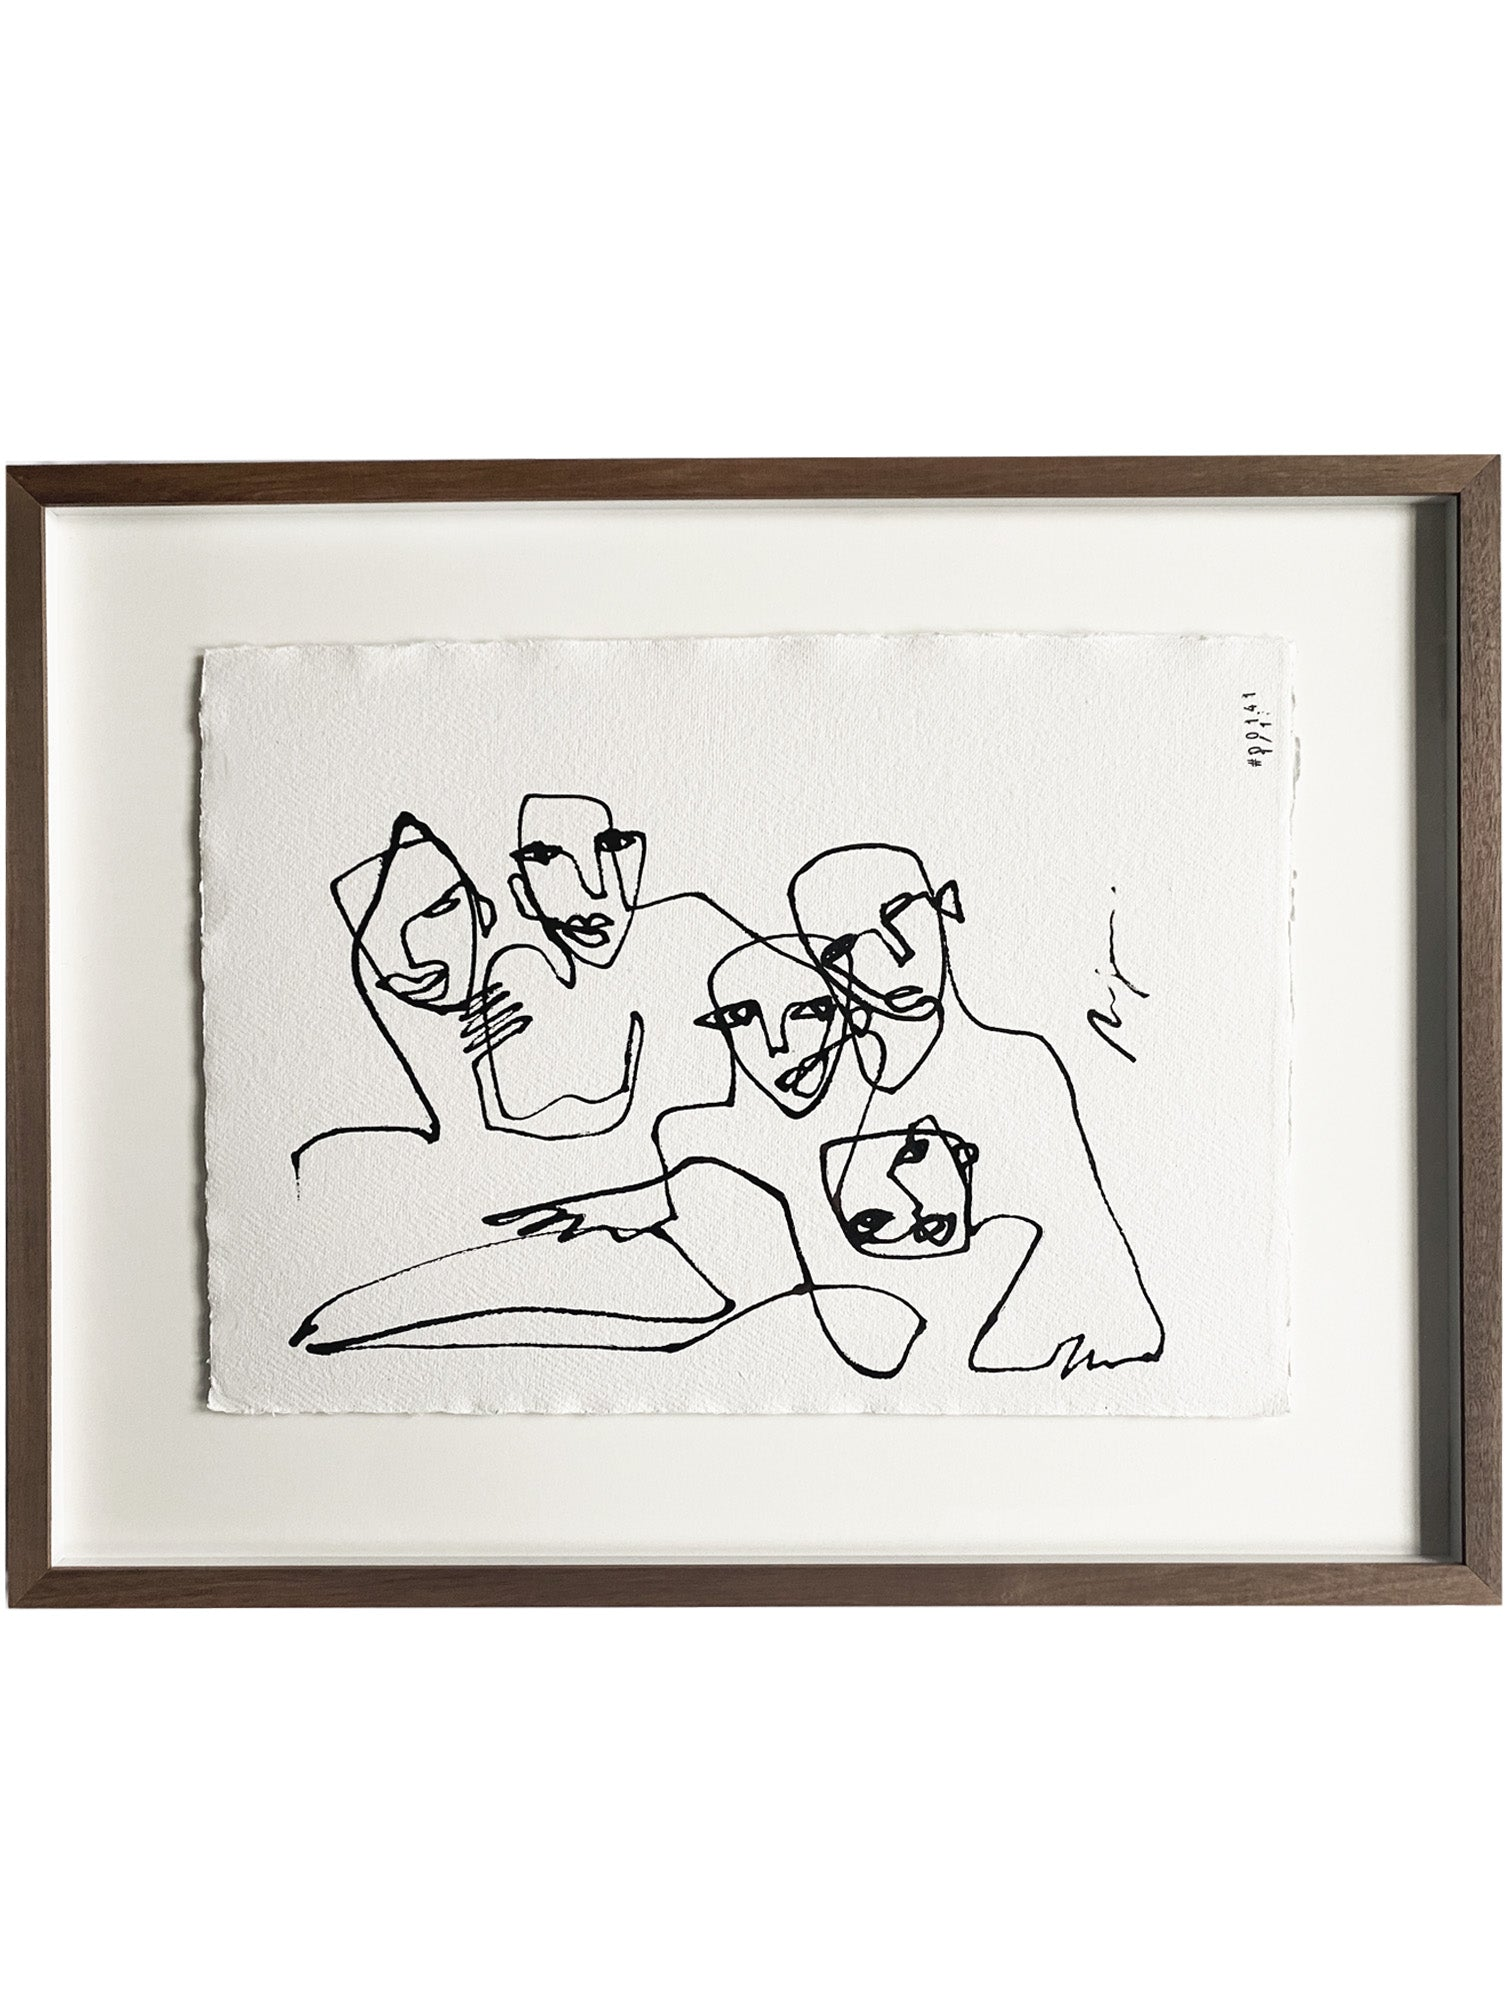 The Inseparable five I One line I Framed